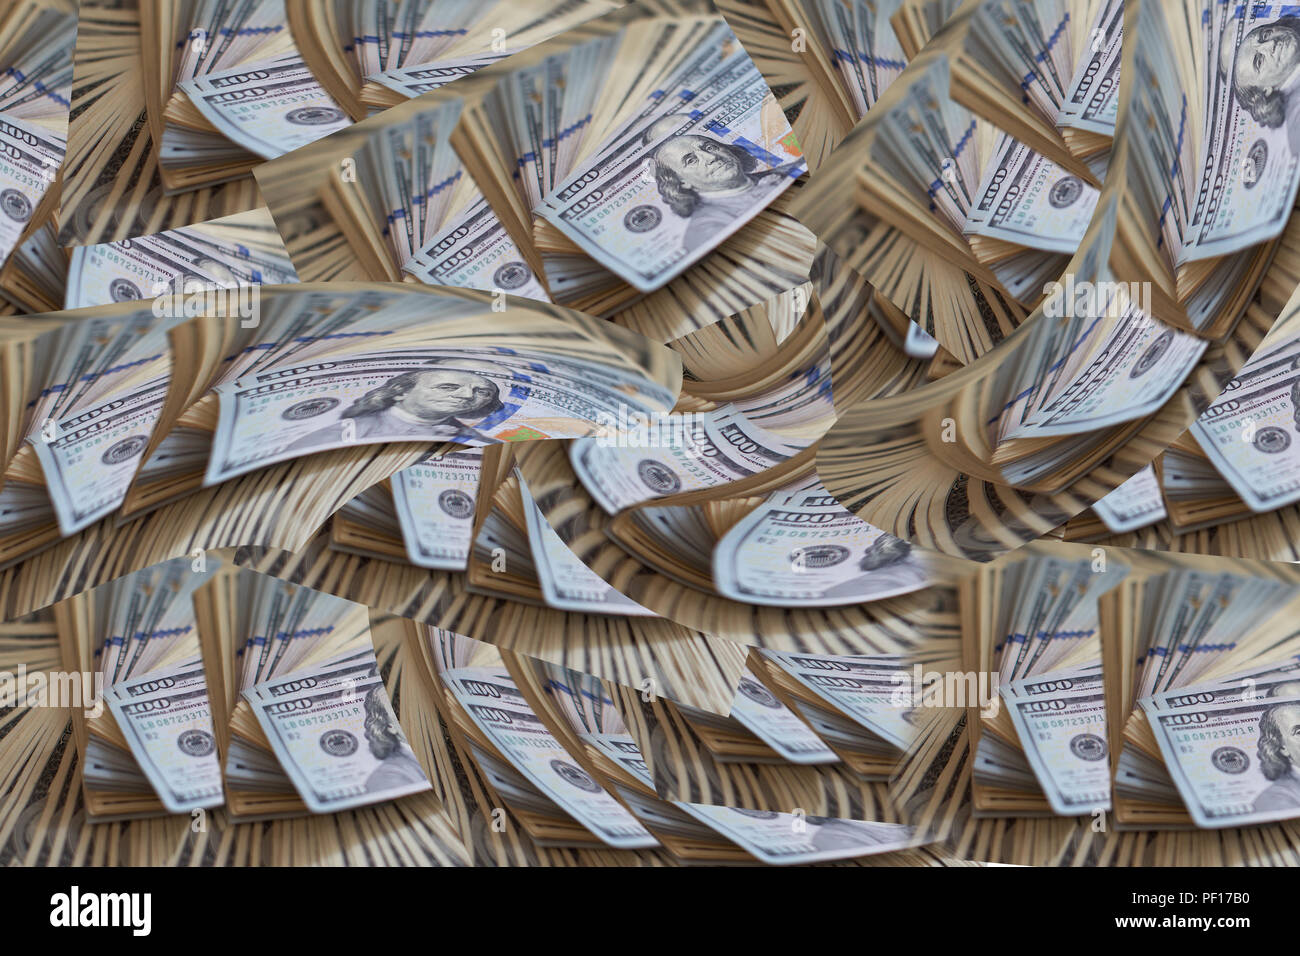 A lot of dollars. A bundle of money. The concept of wealth. Dollars - Stock Image